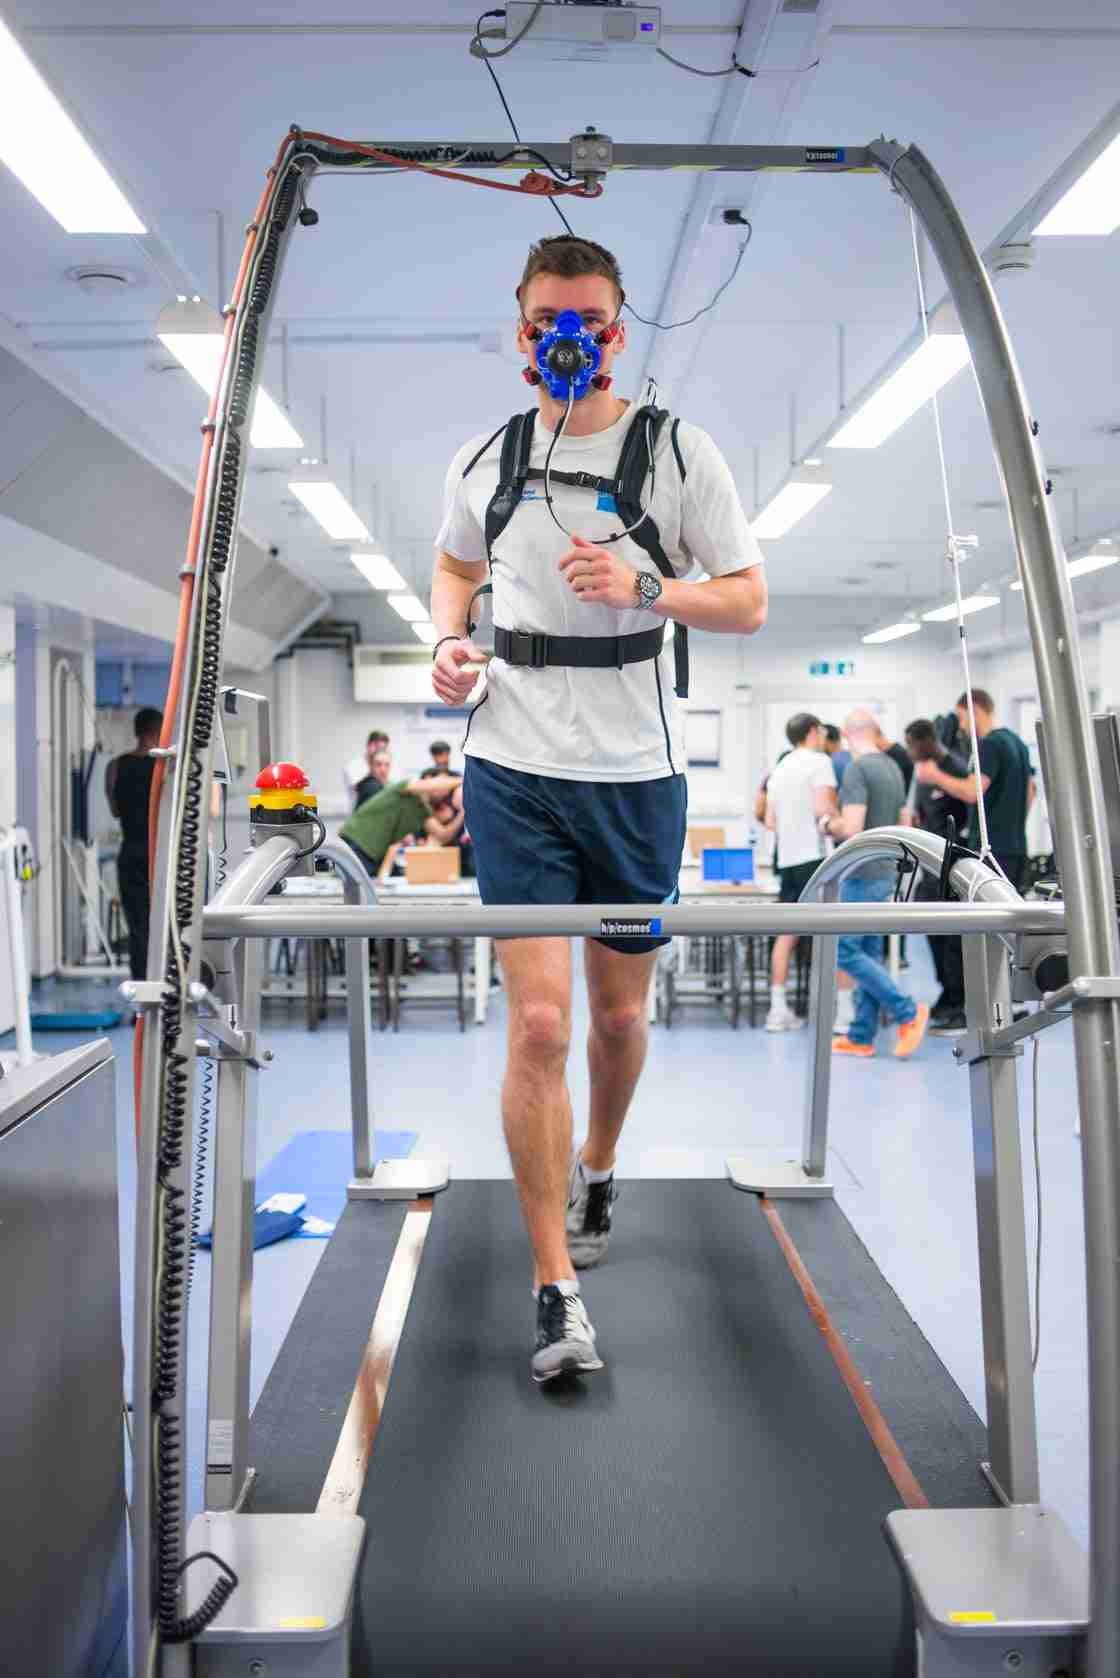 Exercise physiology and biomechanics laboratories